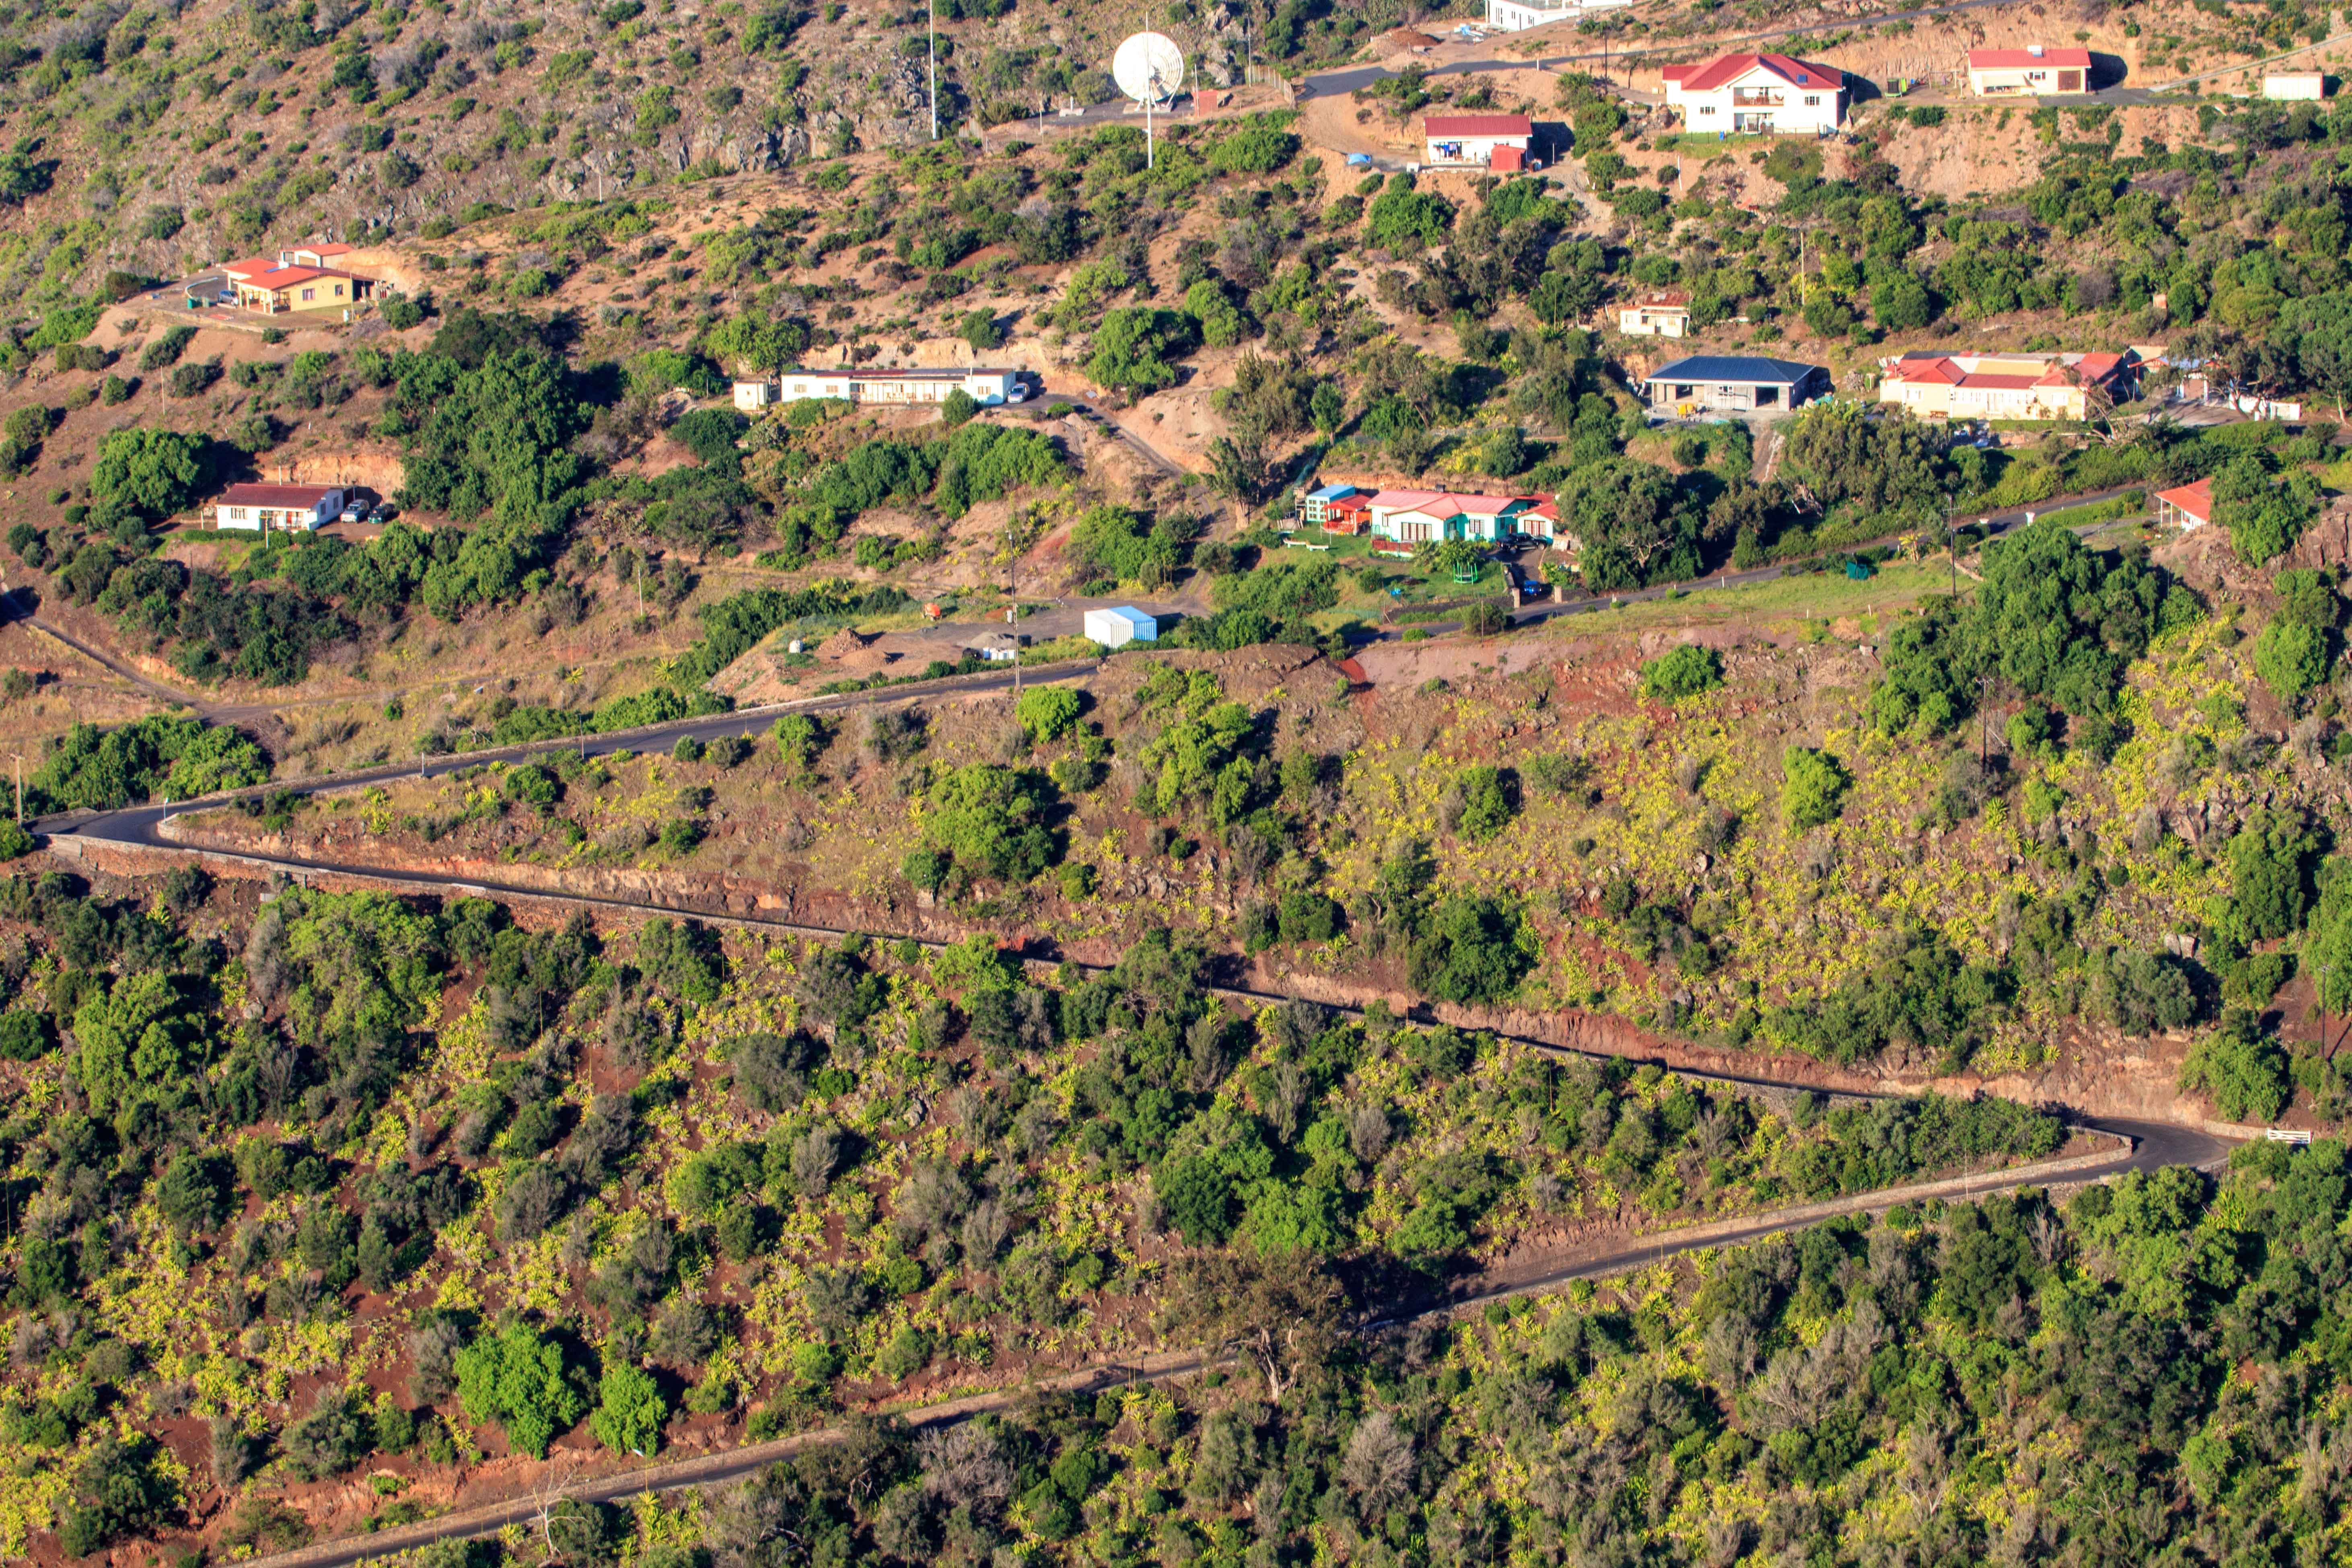 An example of some of the roads in St. Helena. By the end of the trip, we were pros at the 'slow down and hoot before the corner' technique.